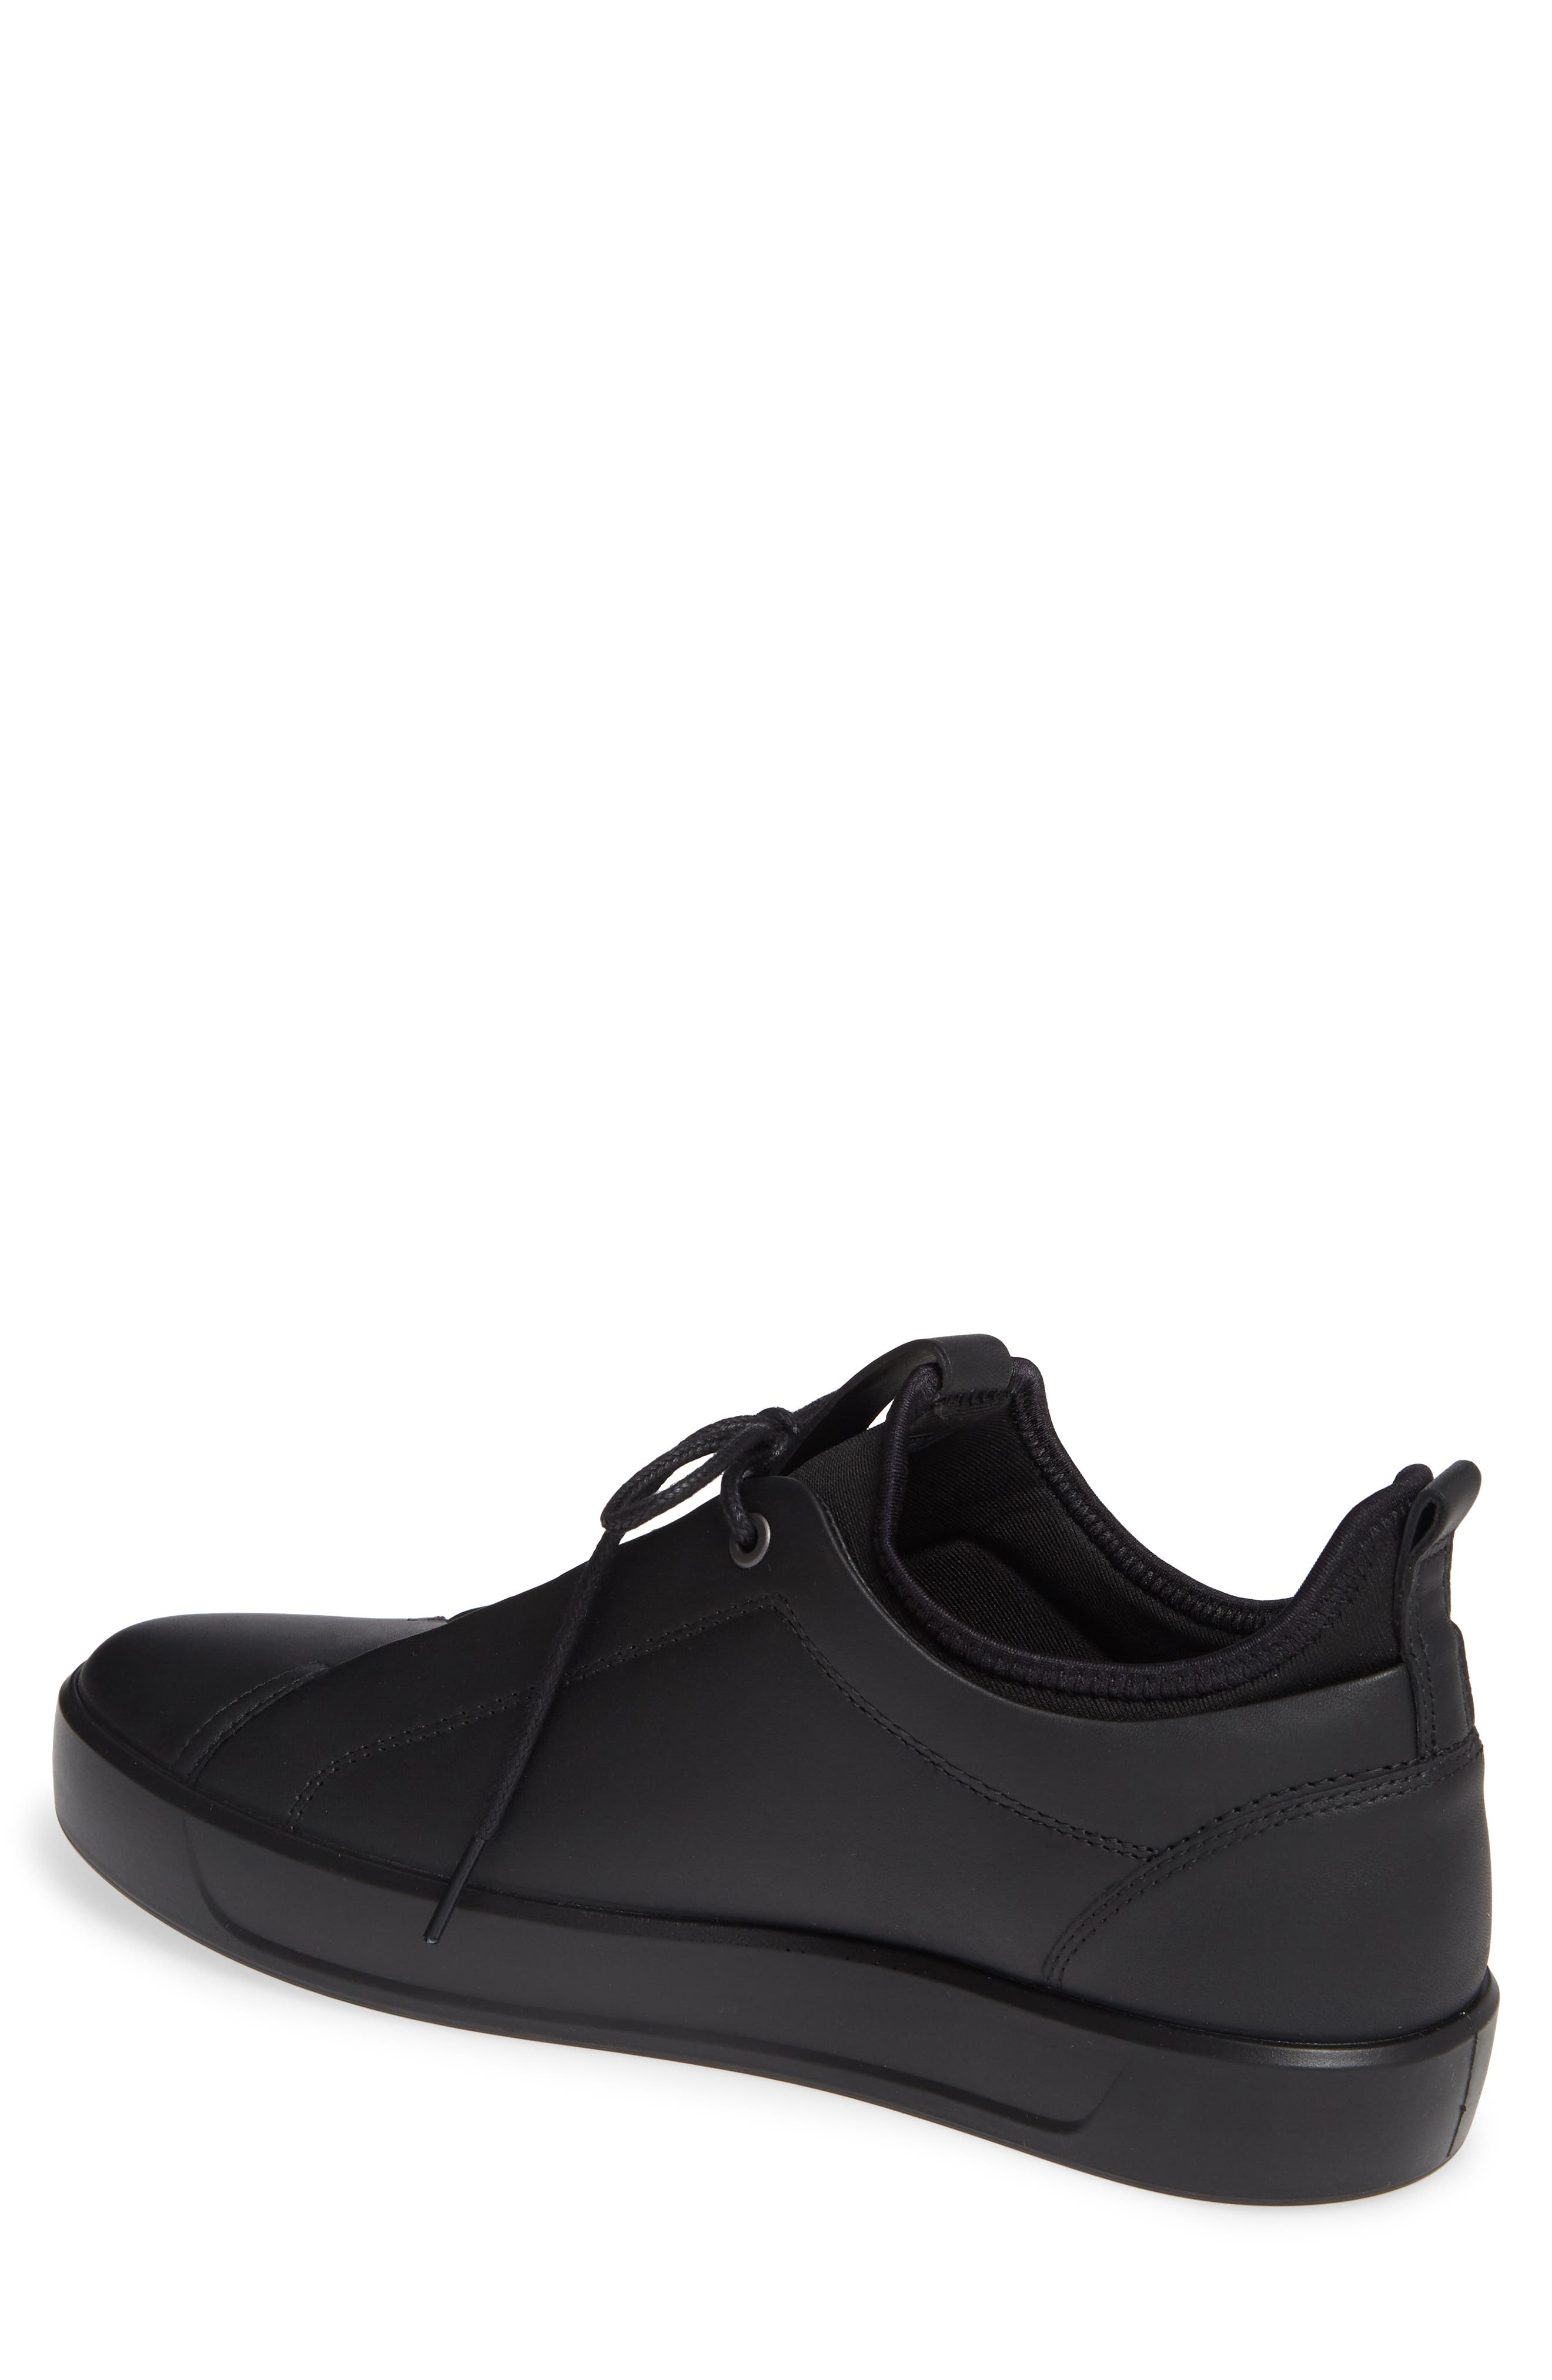 Soft 8 Low Top Sneaker,                             Alternate thumbnail 2, color,                             BLACK LEATHER